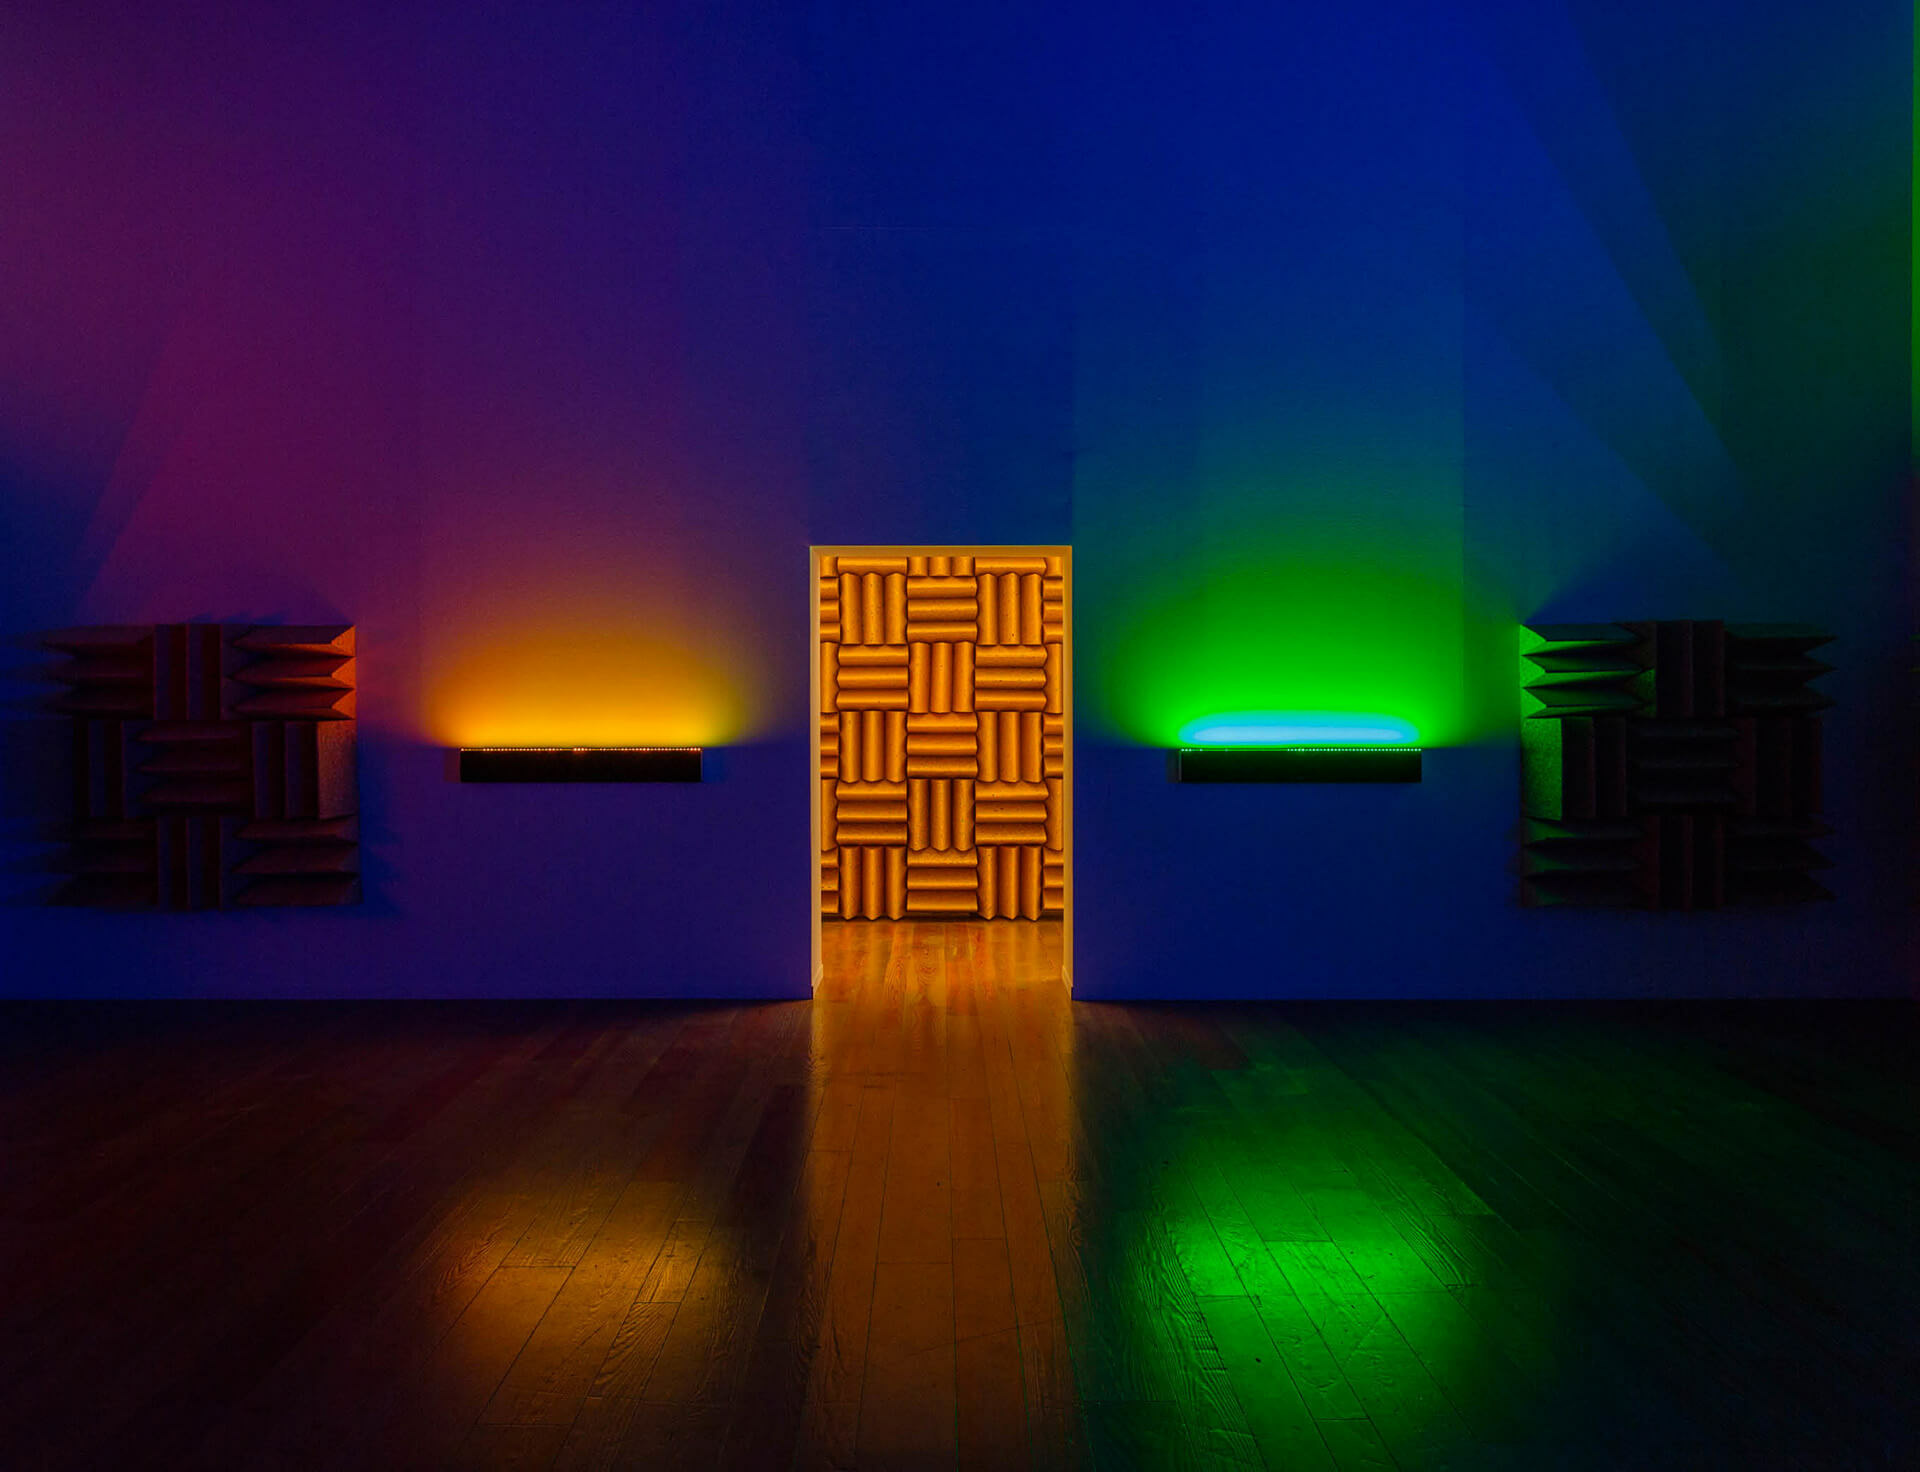 Haroon Mirza at ArtReview Asia Xiàn Chăng, West Bund Art & Design